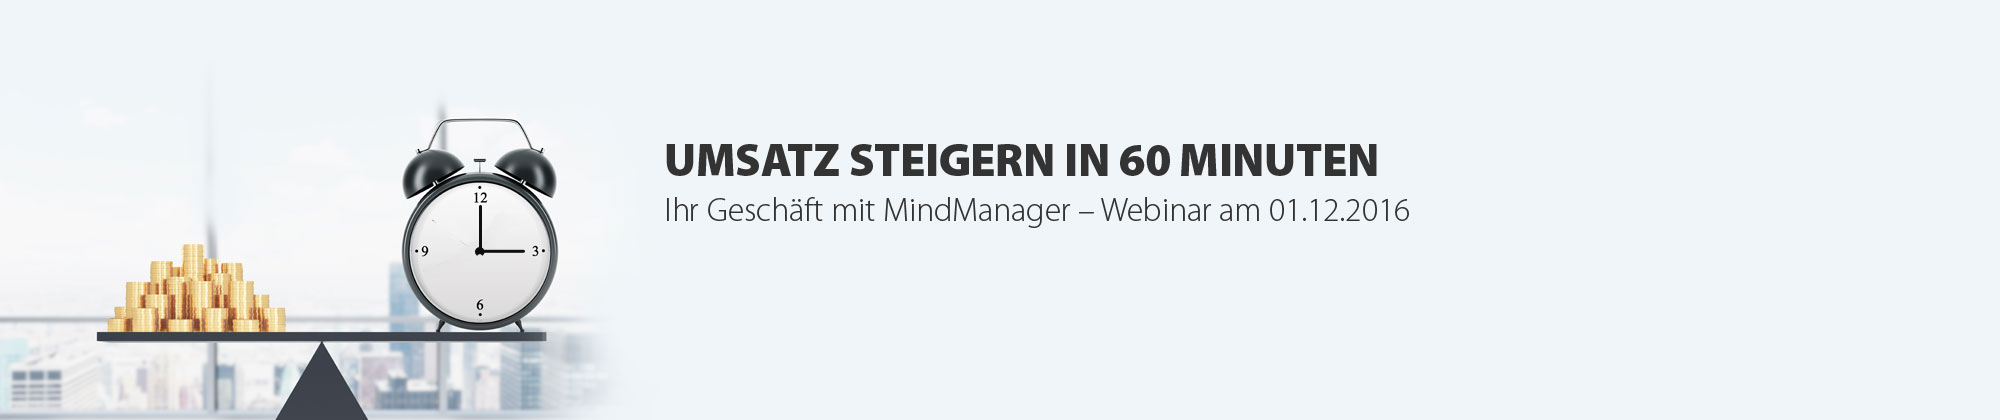 mindjet_mm_webinar-q4_2016_gross